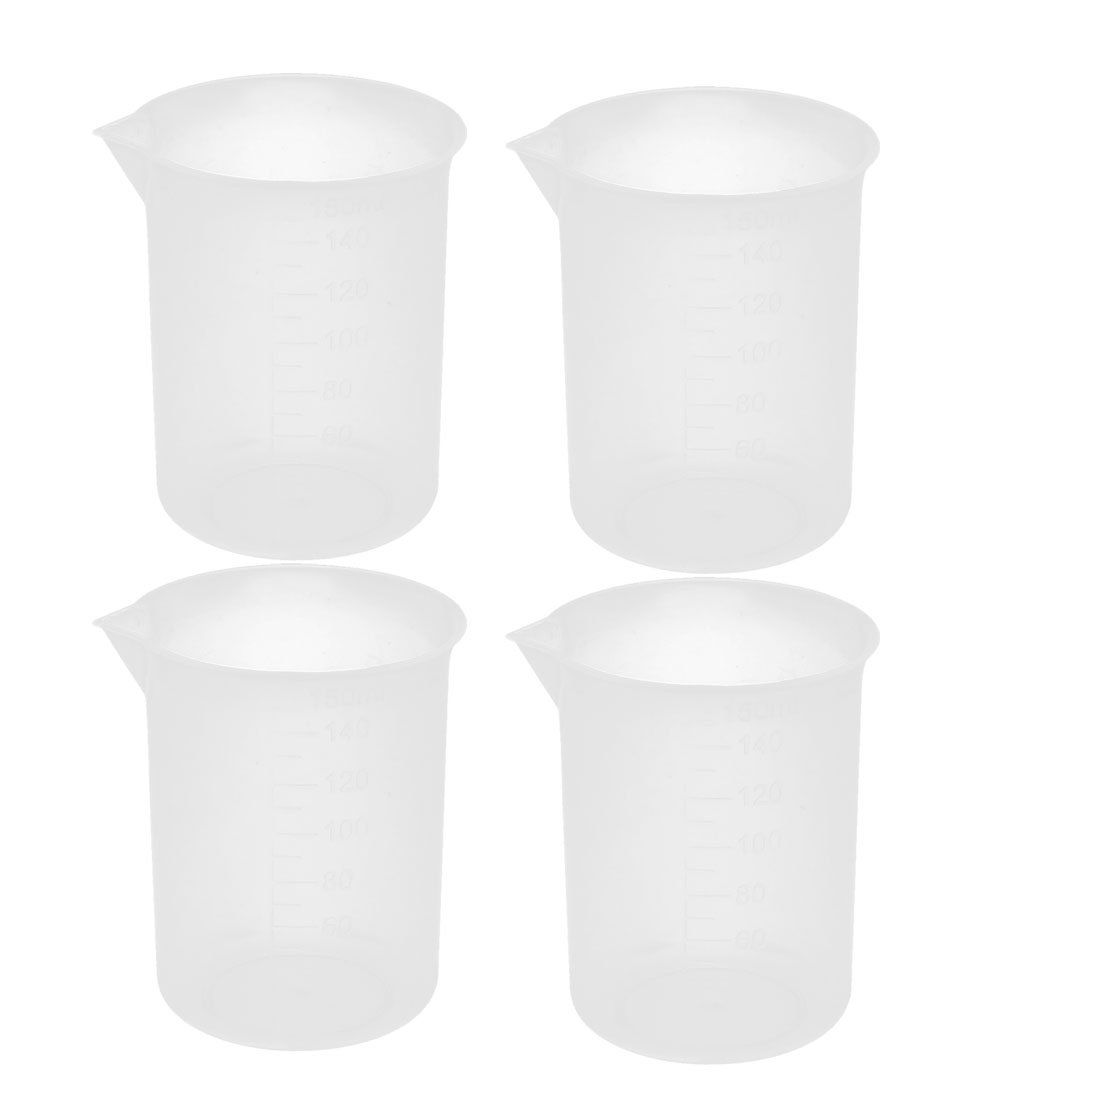 4 Pcs Lab Plastic Liquid Storage Measuring Testing Beaker 150mL Capacity